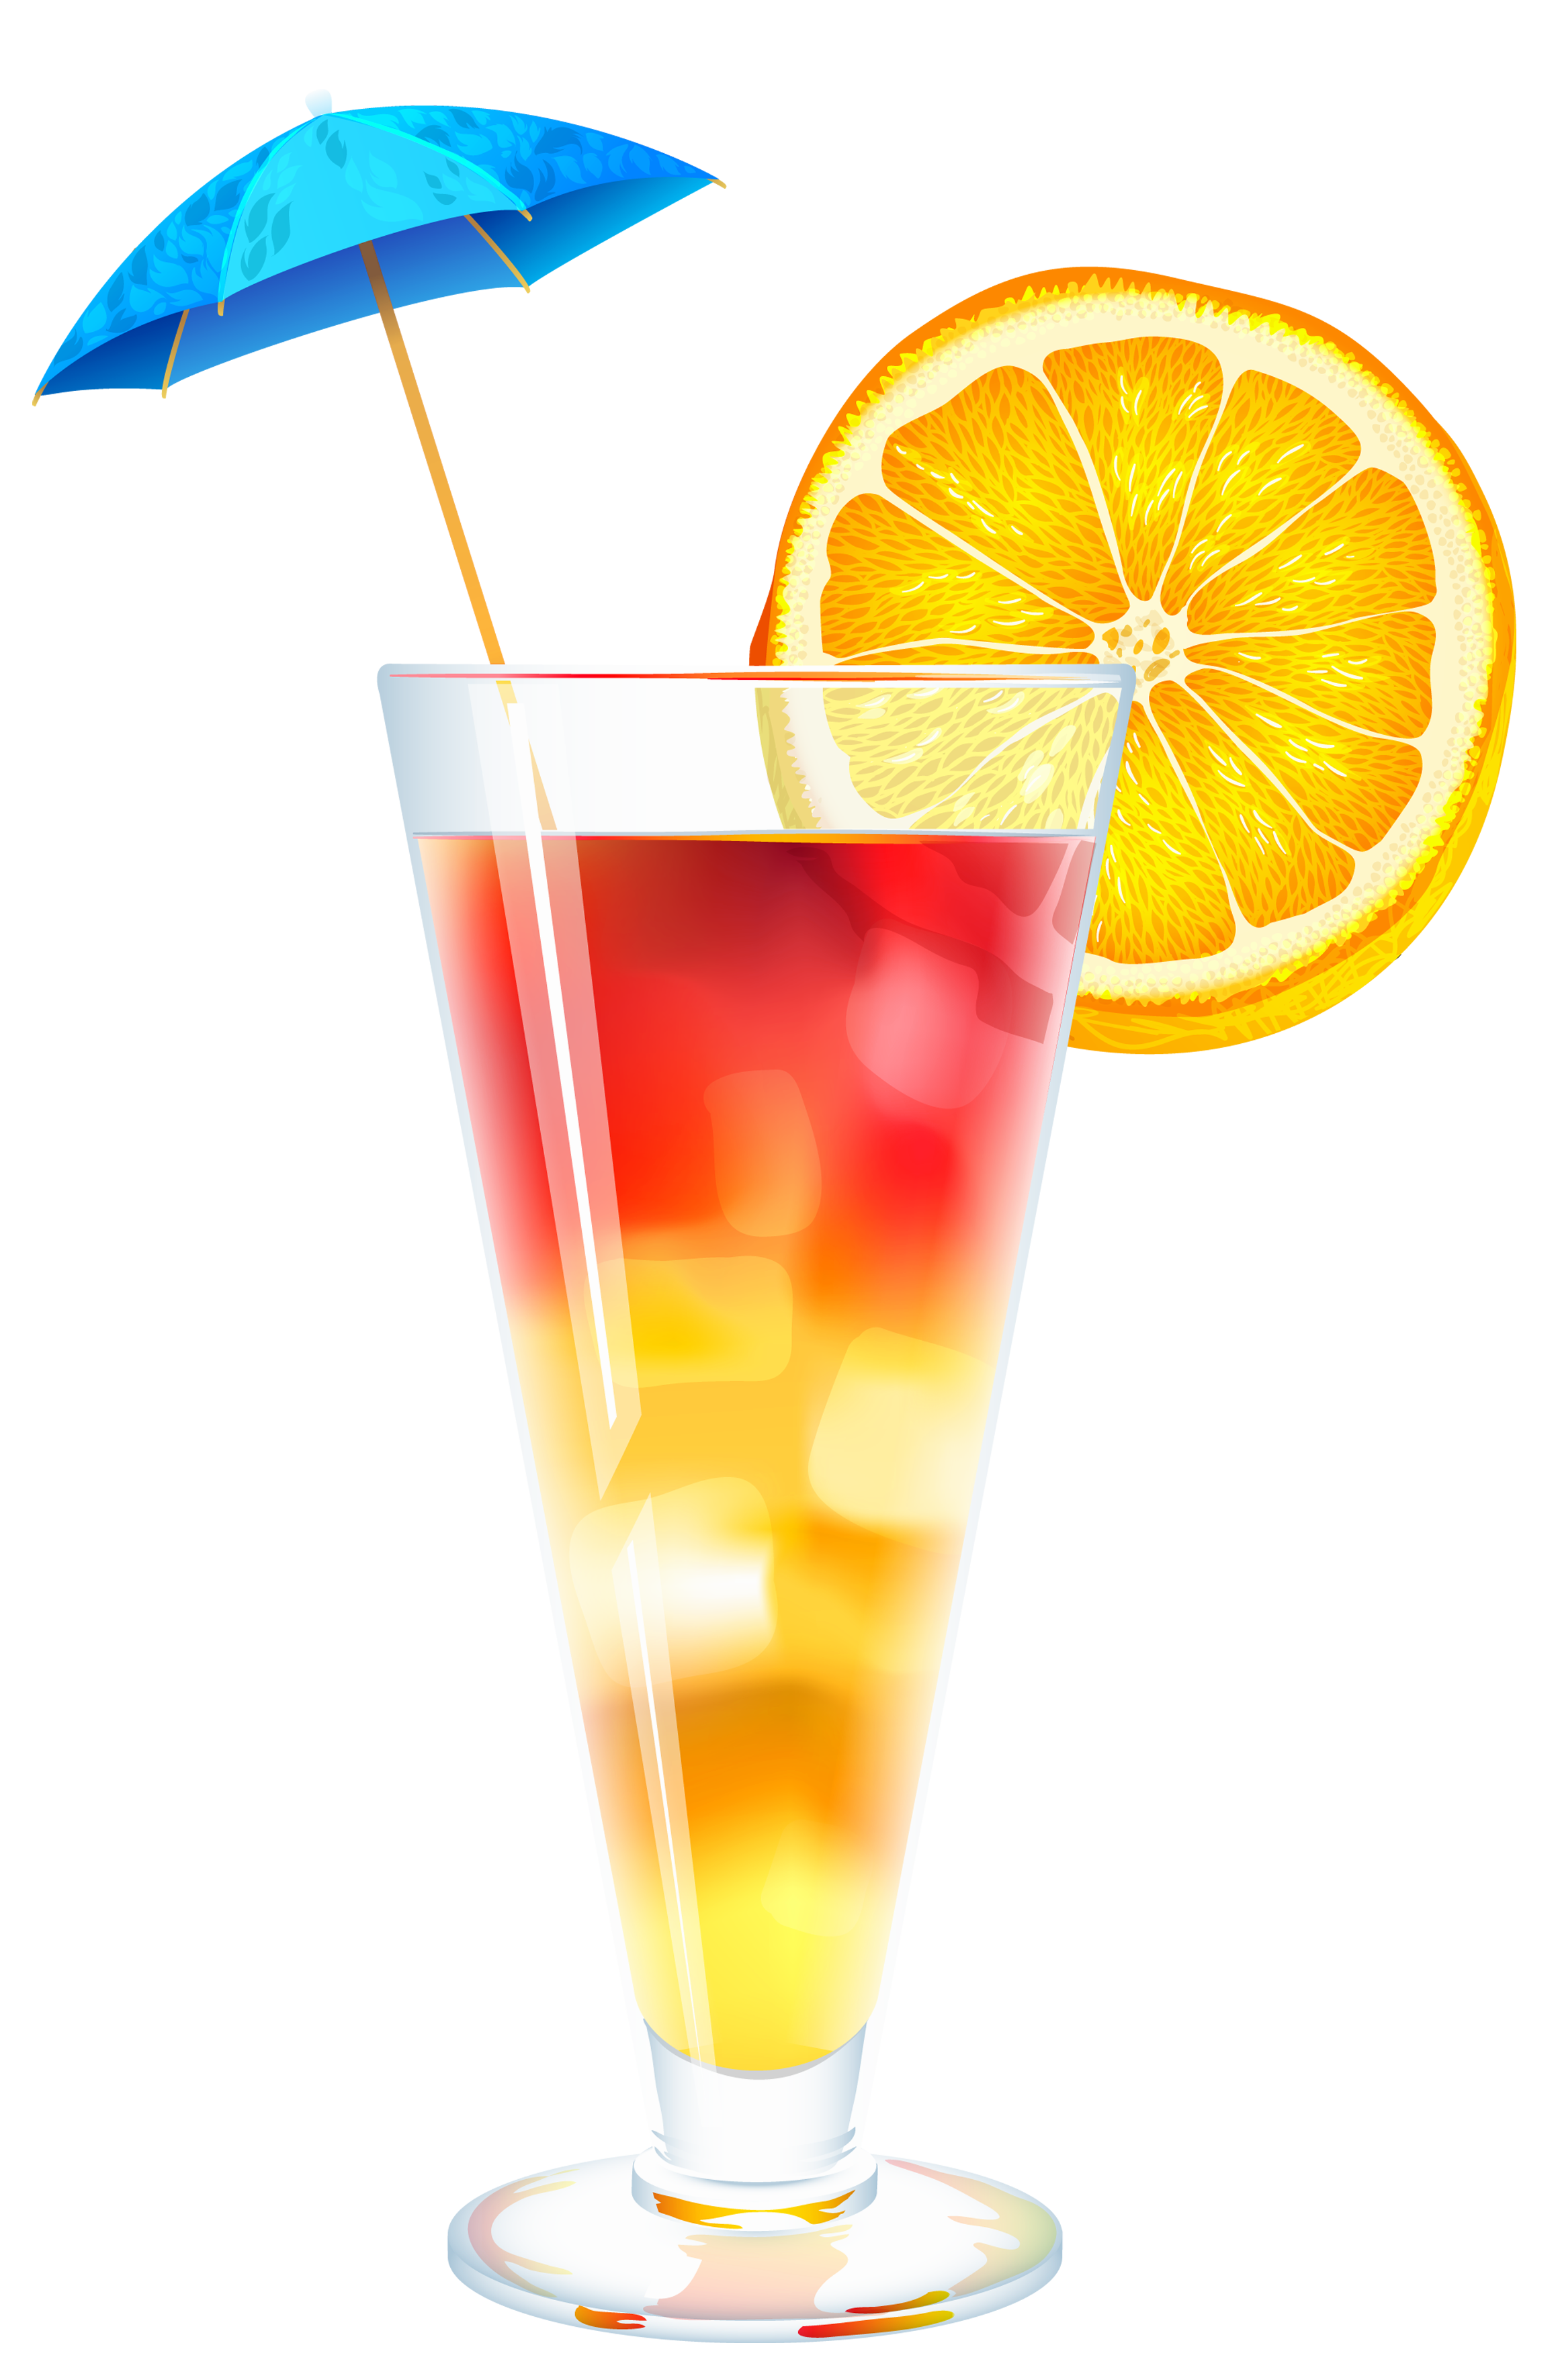 summer cocktail png clipart image clip art drinks ice #15651